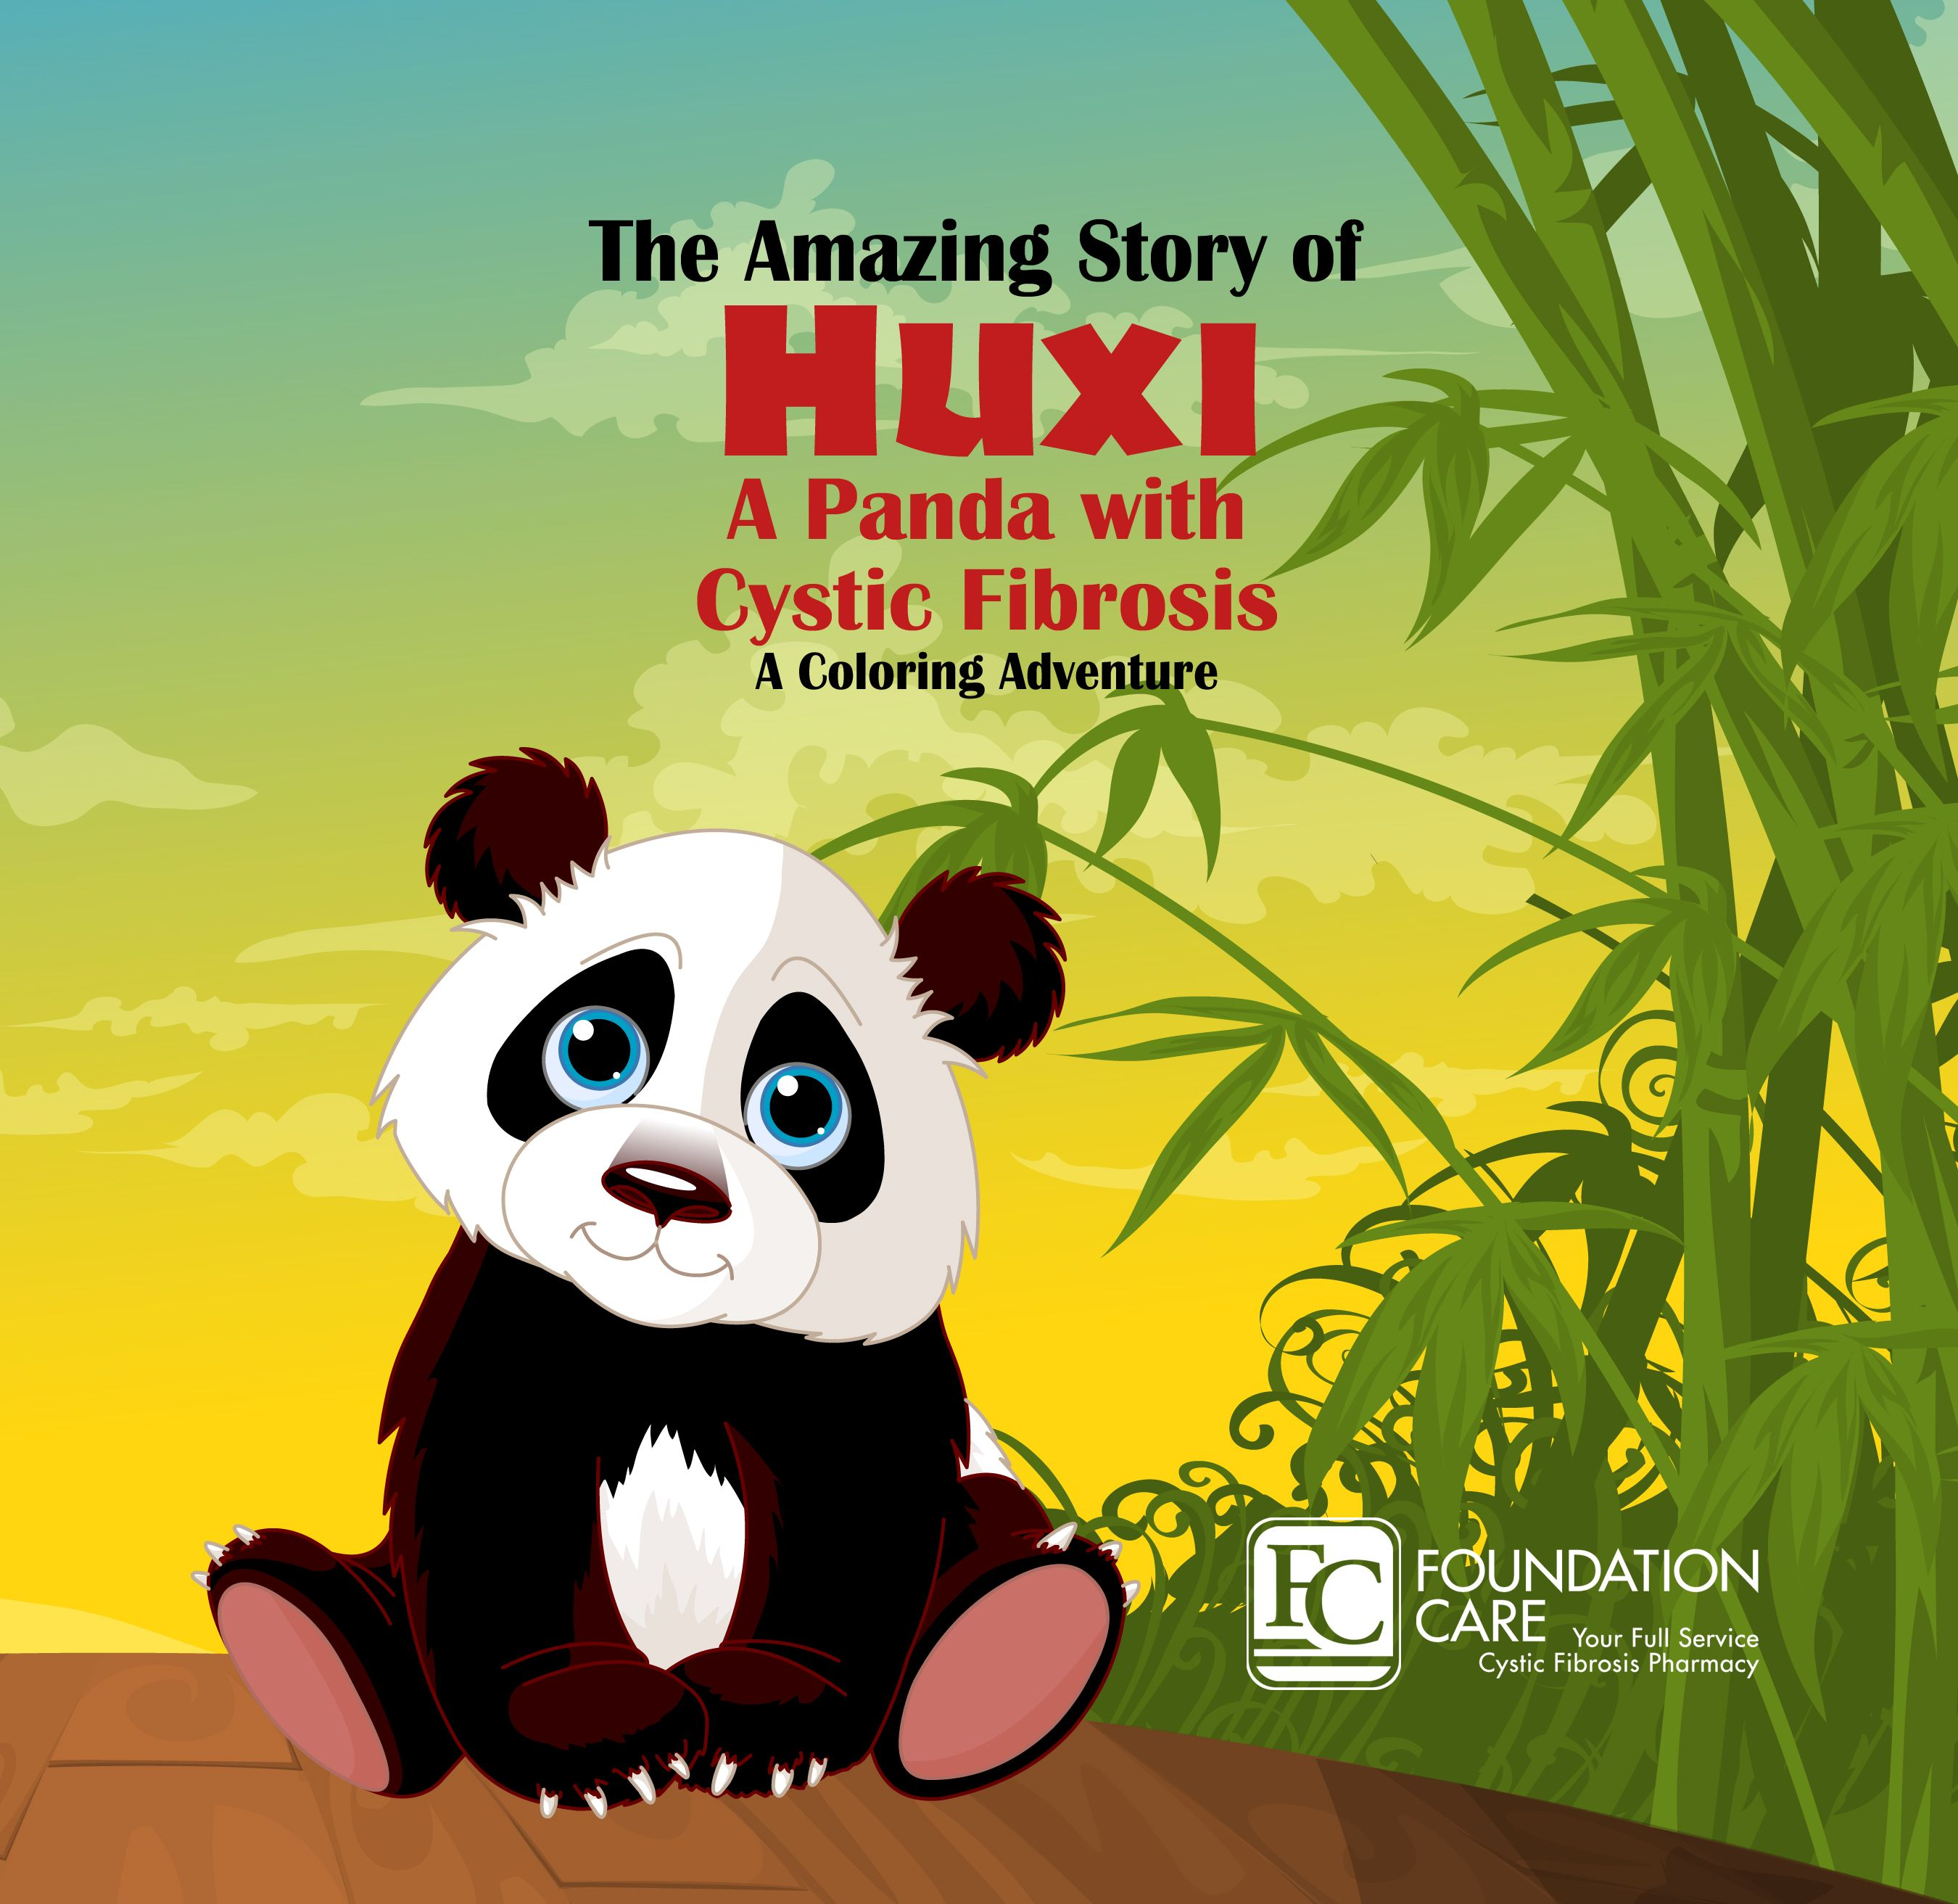 Coloring books for childhood diseases - The Amazing Story Of Huxi A Panda With Cystic Fibrosis A Coloring Book Designed To Be A Fun And Educational Tool To Teach Children With And